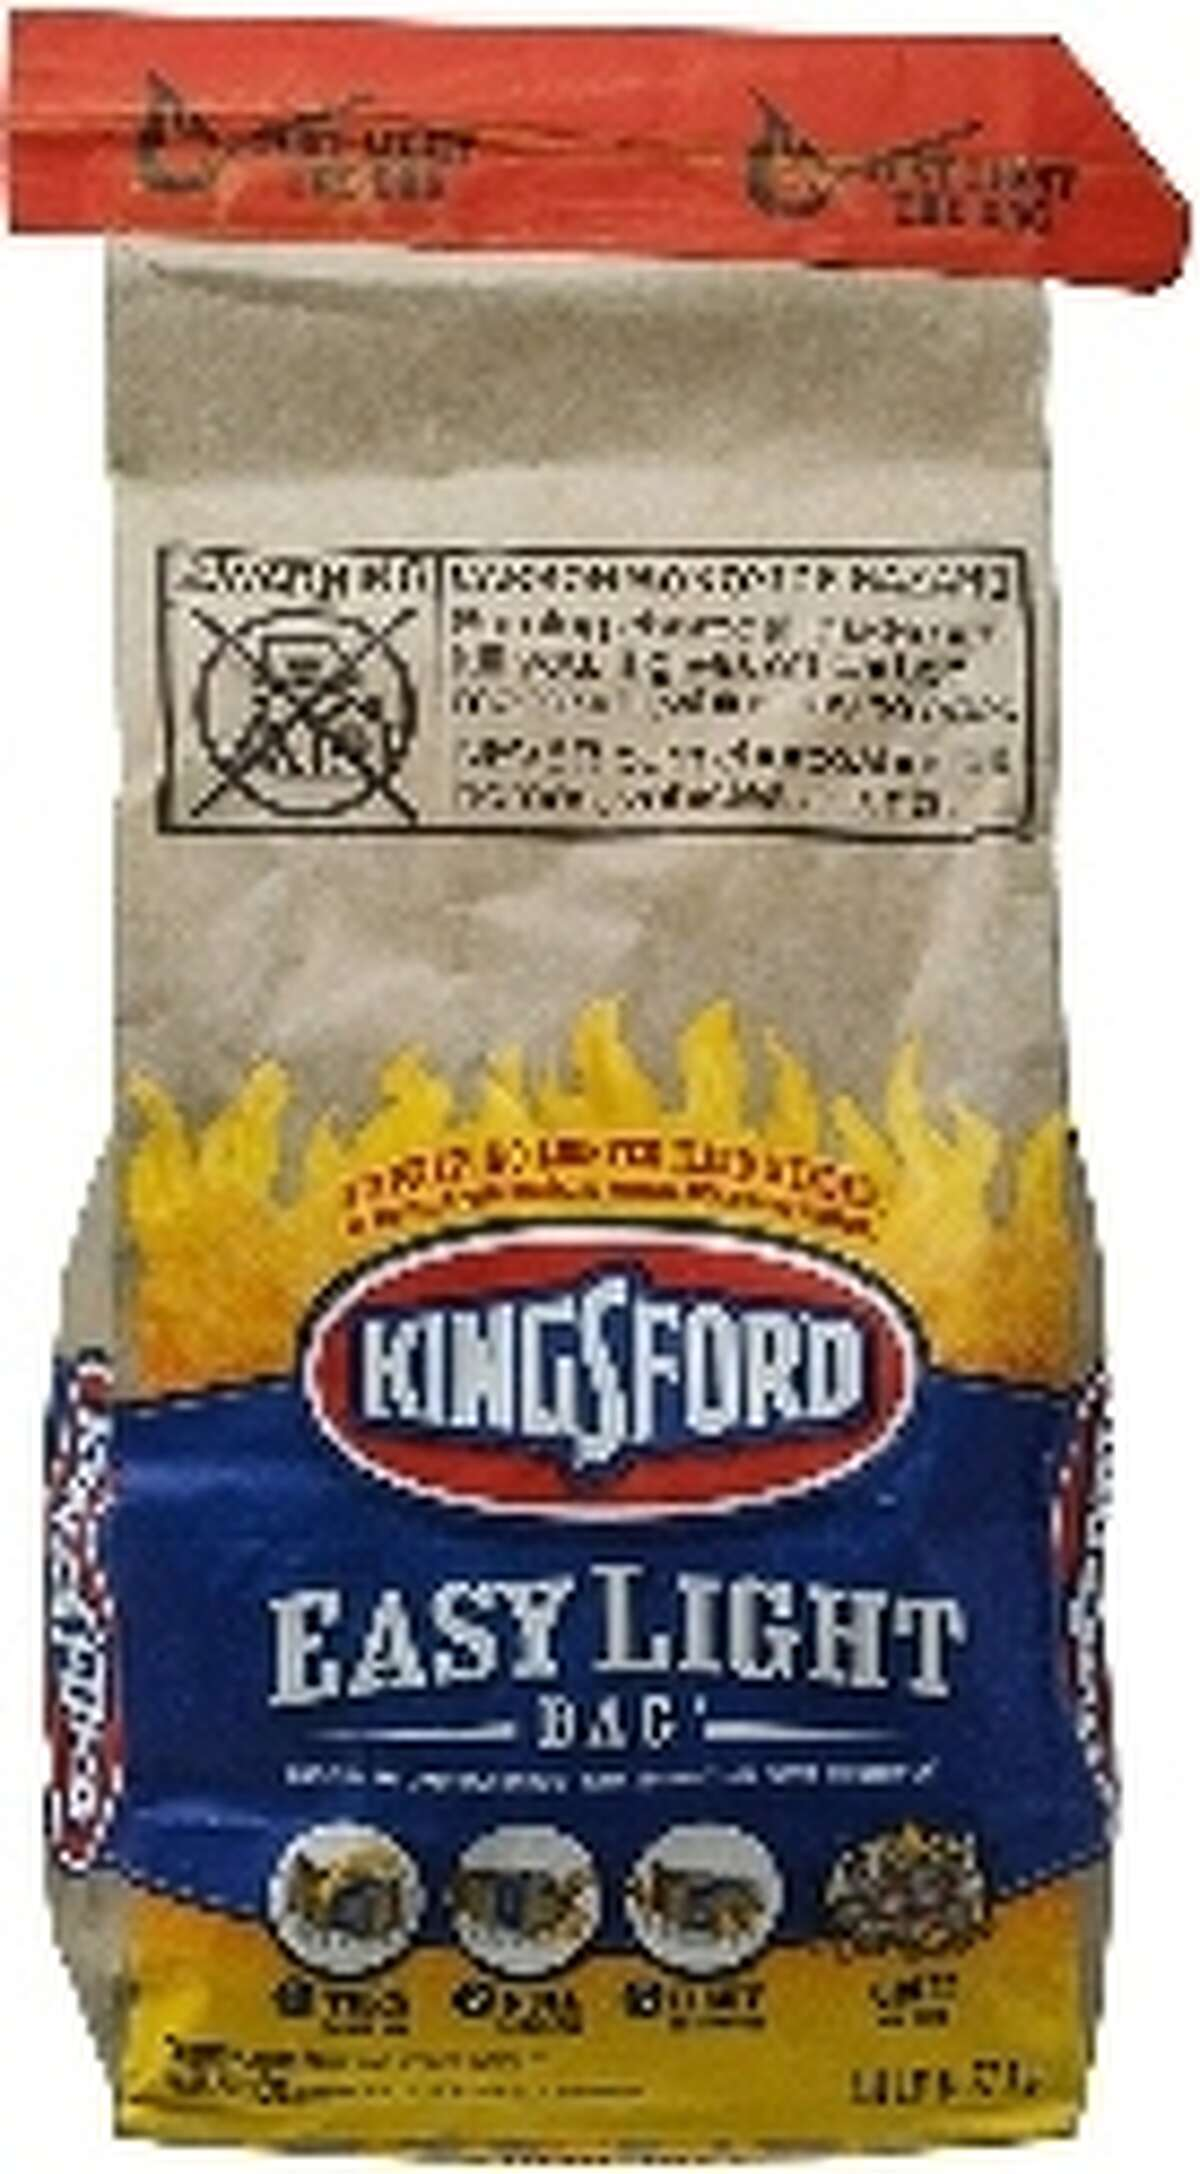 Kingsford Easy Light Bag, 2.8 lbsThough it's definitely cheaper to buy charcoal in bulk, we're on a budget here -- and I would never betray your trust with a misleading headline. 2.8 lbs is plenty when it comes to pumping out burgers and hot dogs. Plus, it's